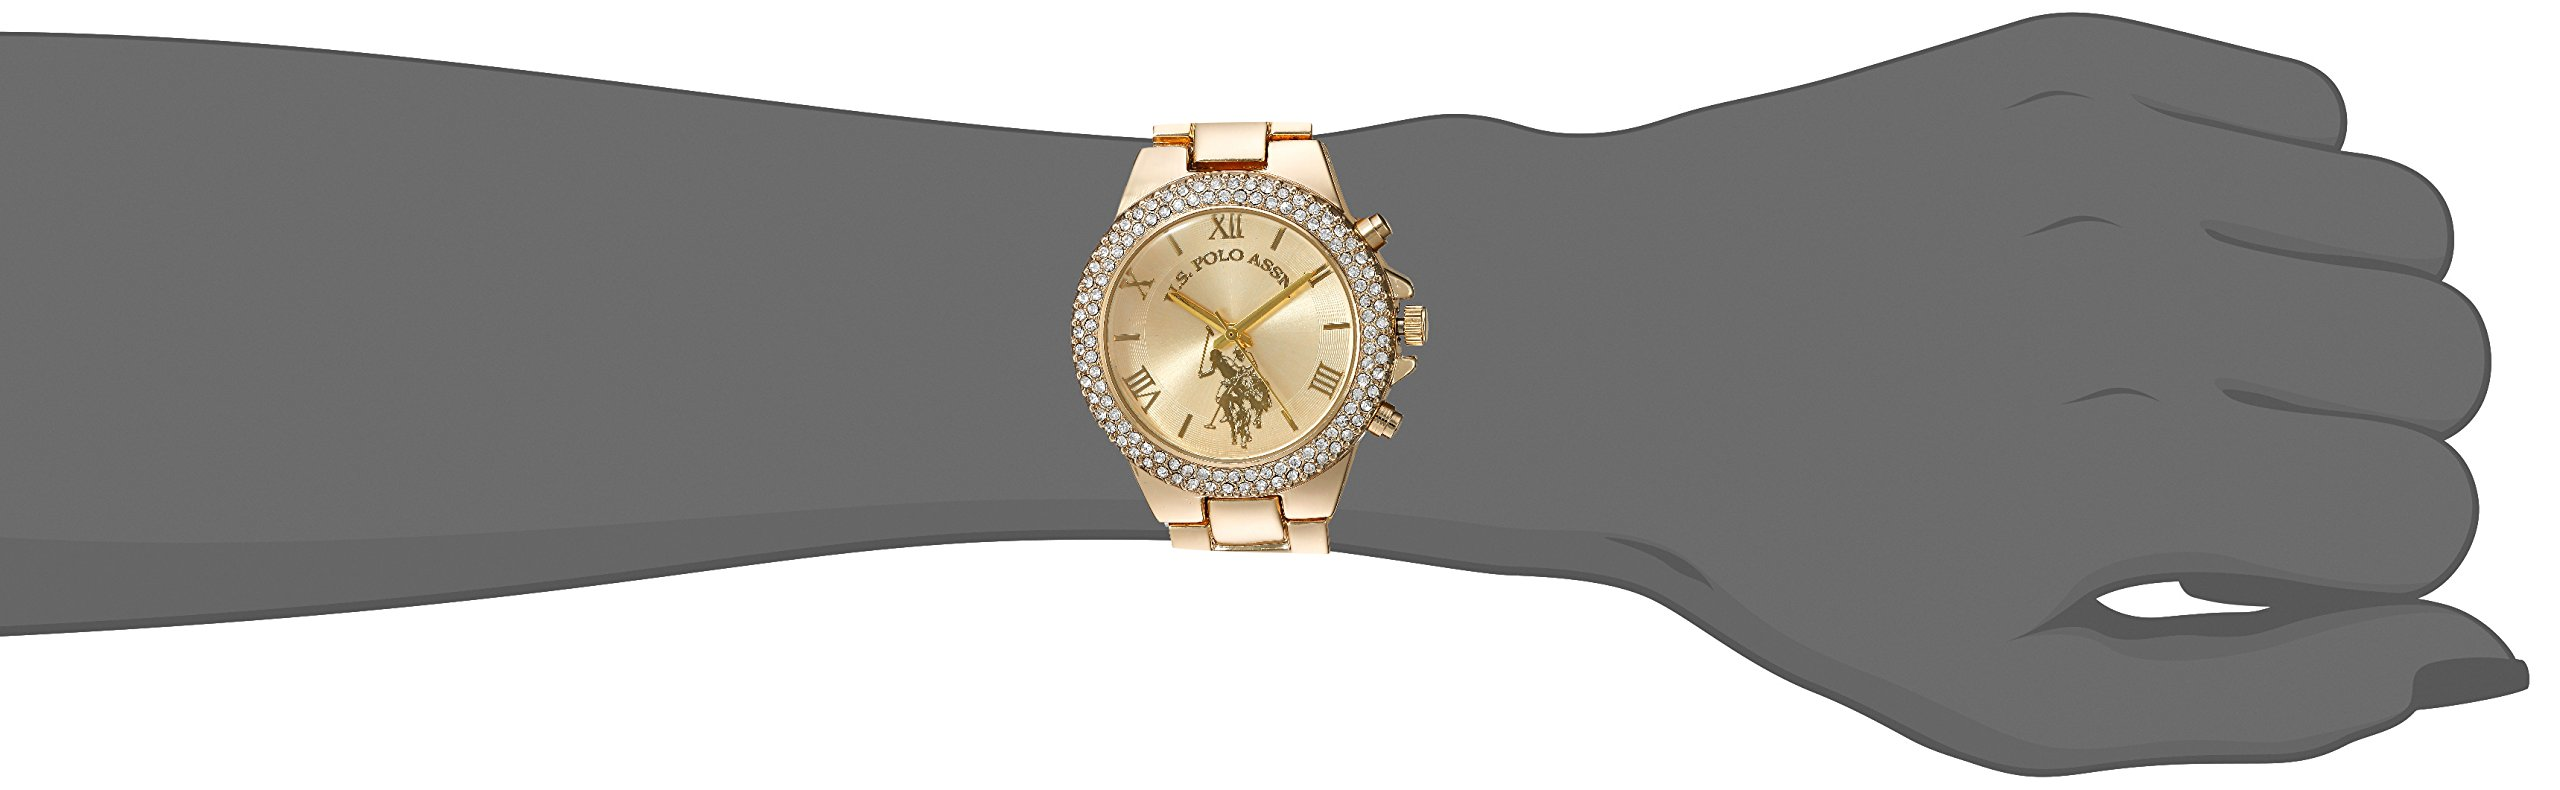 U.S. Polo Assn. Women's Quartz Metal and Alloy Casual Watch, Color Gold-Toned (Model: USC40032) by U.S. Polo Assn. (Image #2)